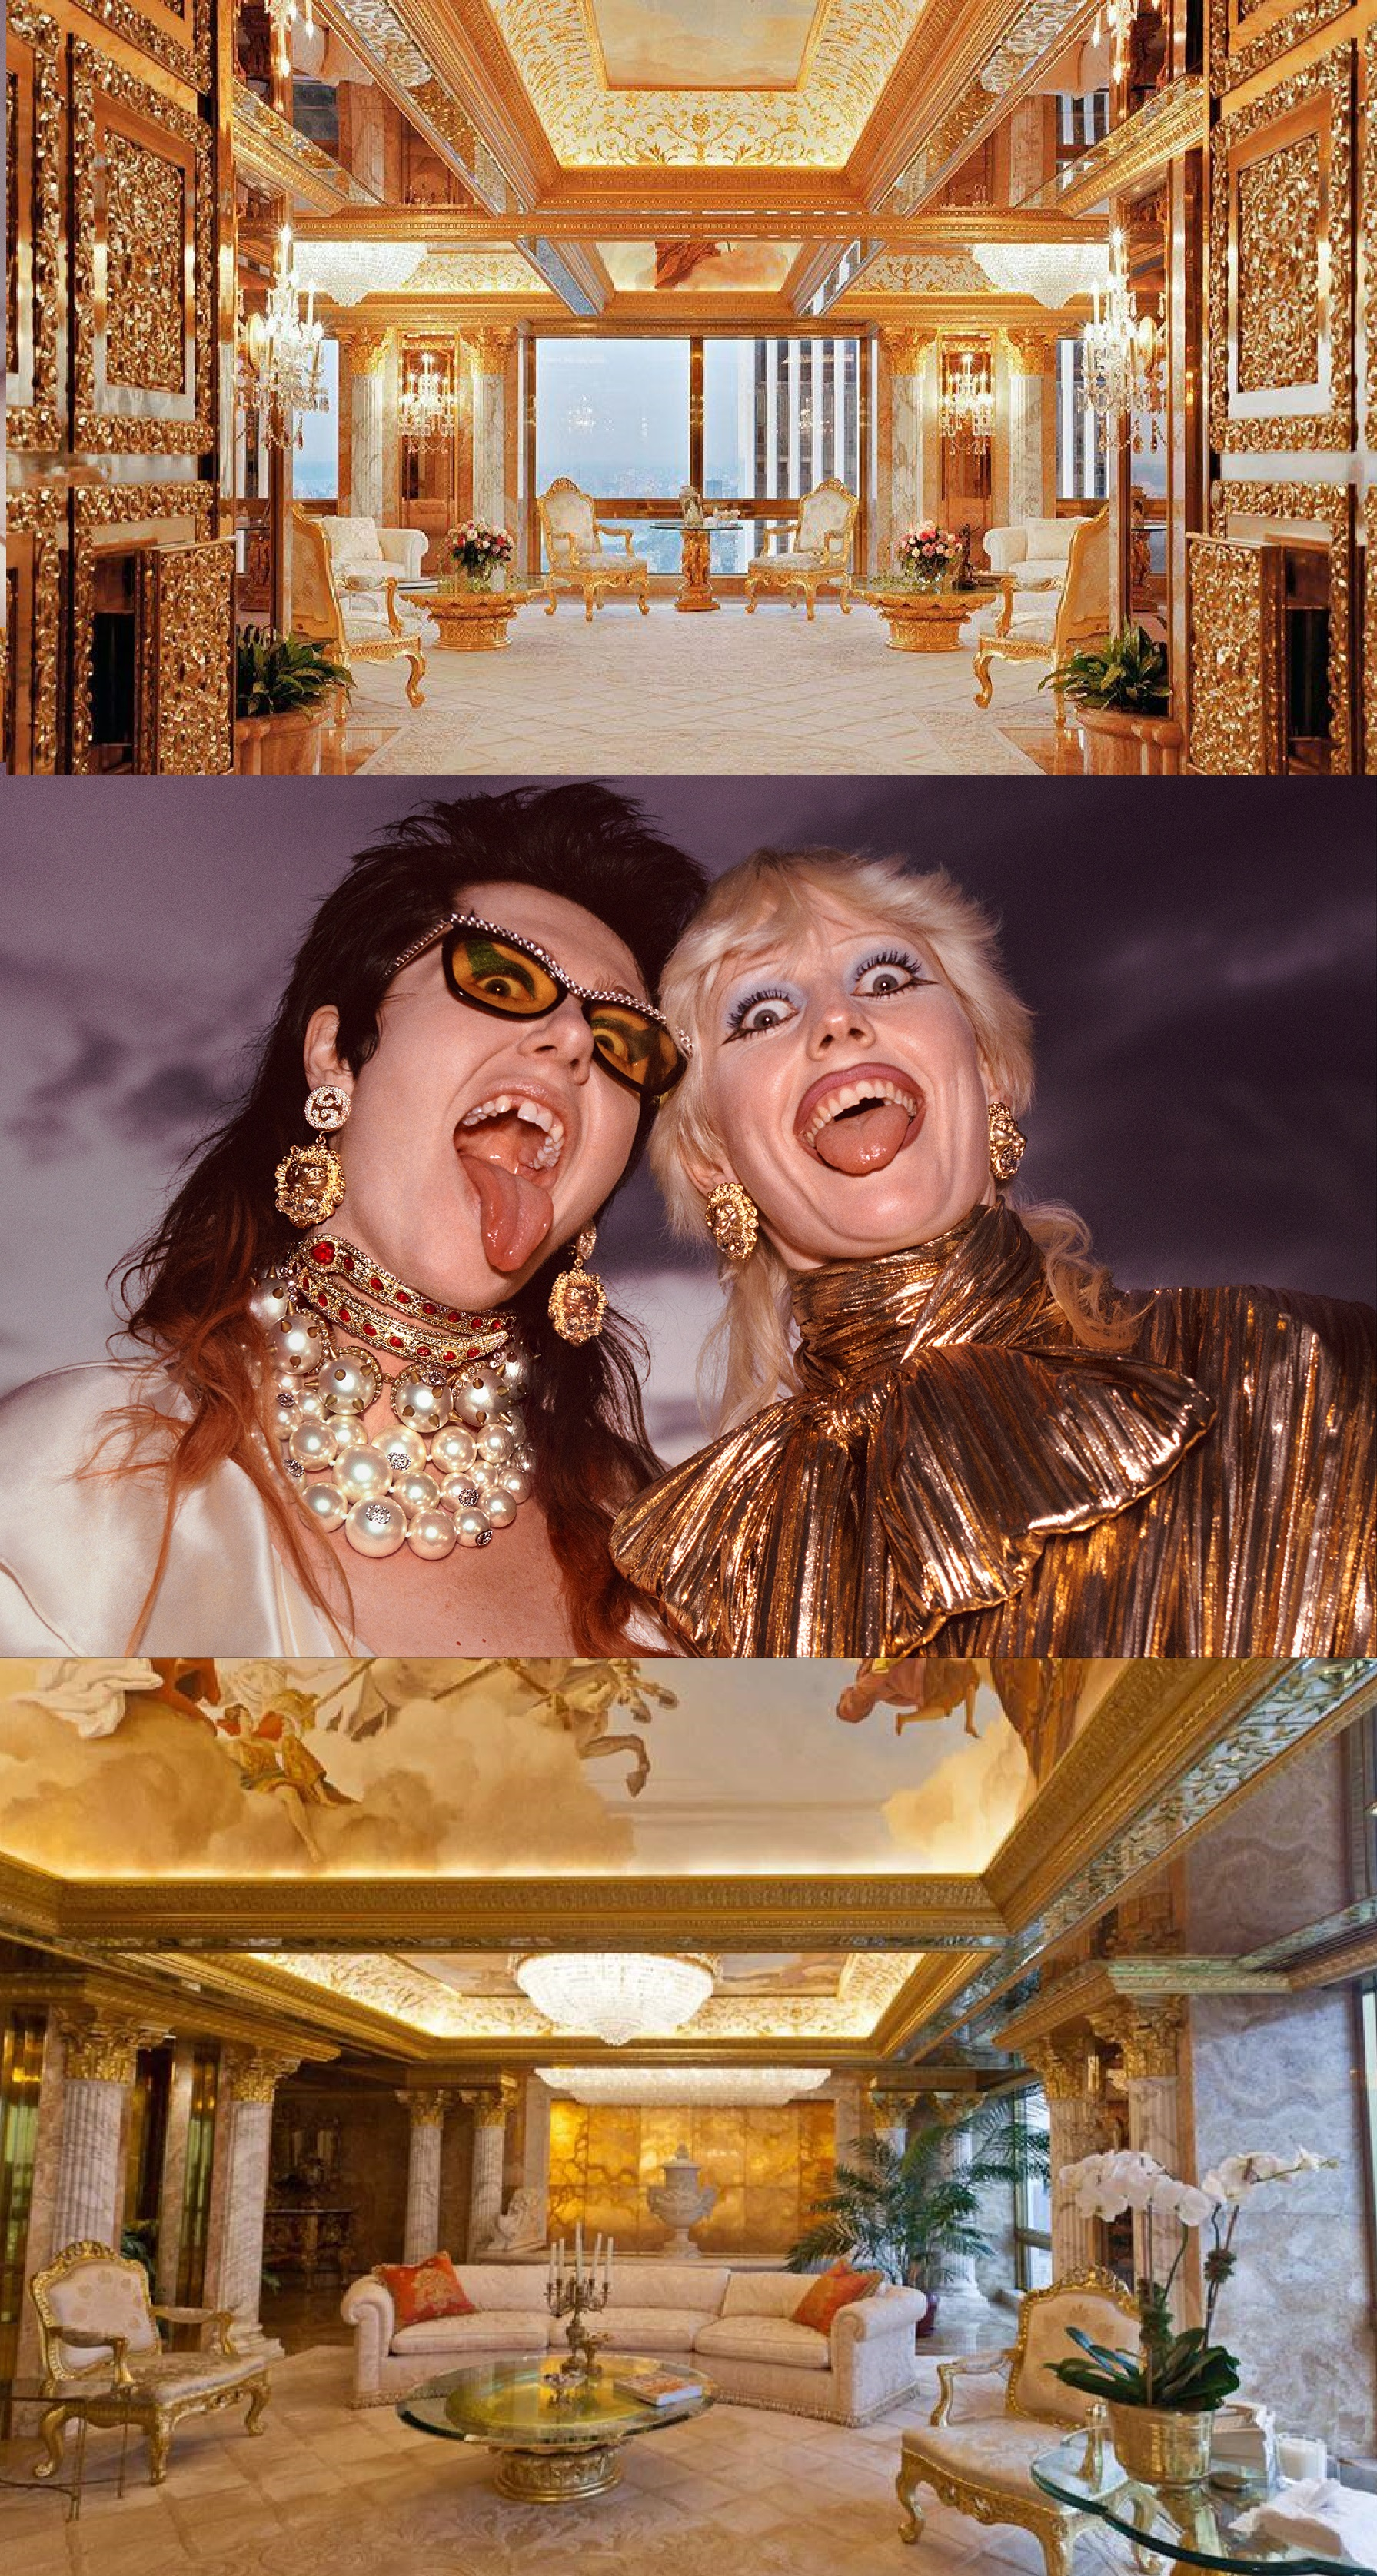 Donald Trump's lying nature defines his design tastes, called 'Dictator Chic' wrote Peter York. Alessandro Michele, Gucci's creative director, and Andrew Bolton of the Met's Costume Exhibit launch a new exhibit at the May 6 Met Gala devoted to 'camp' and its place in fashion, design, culture and even politics.